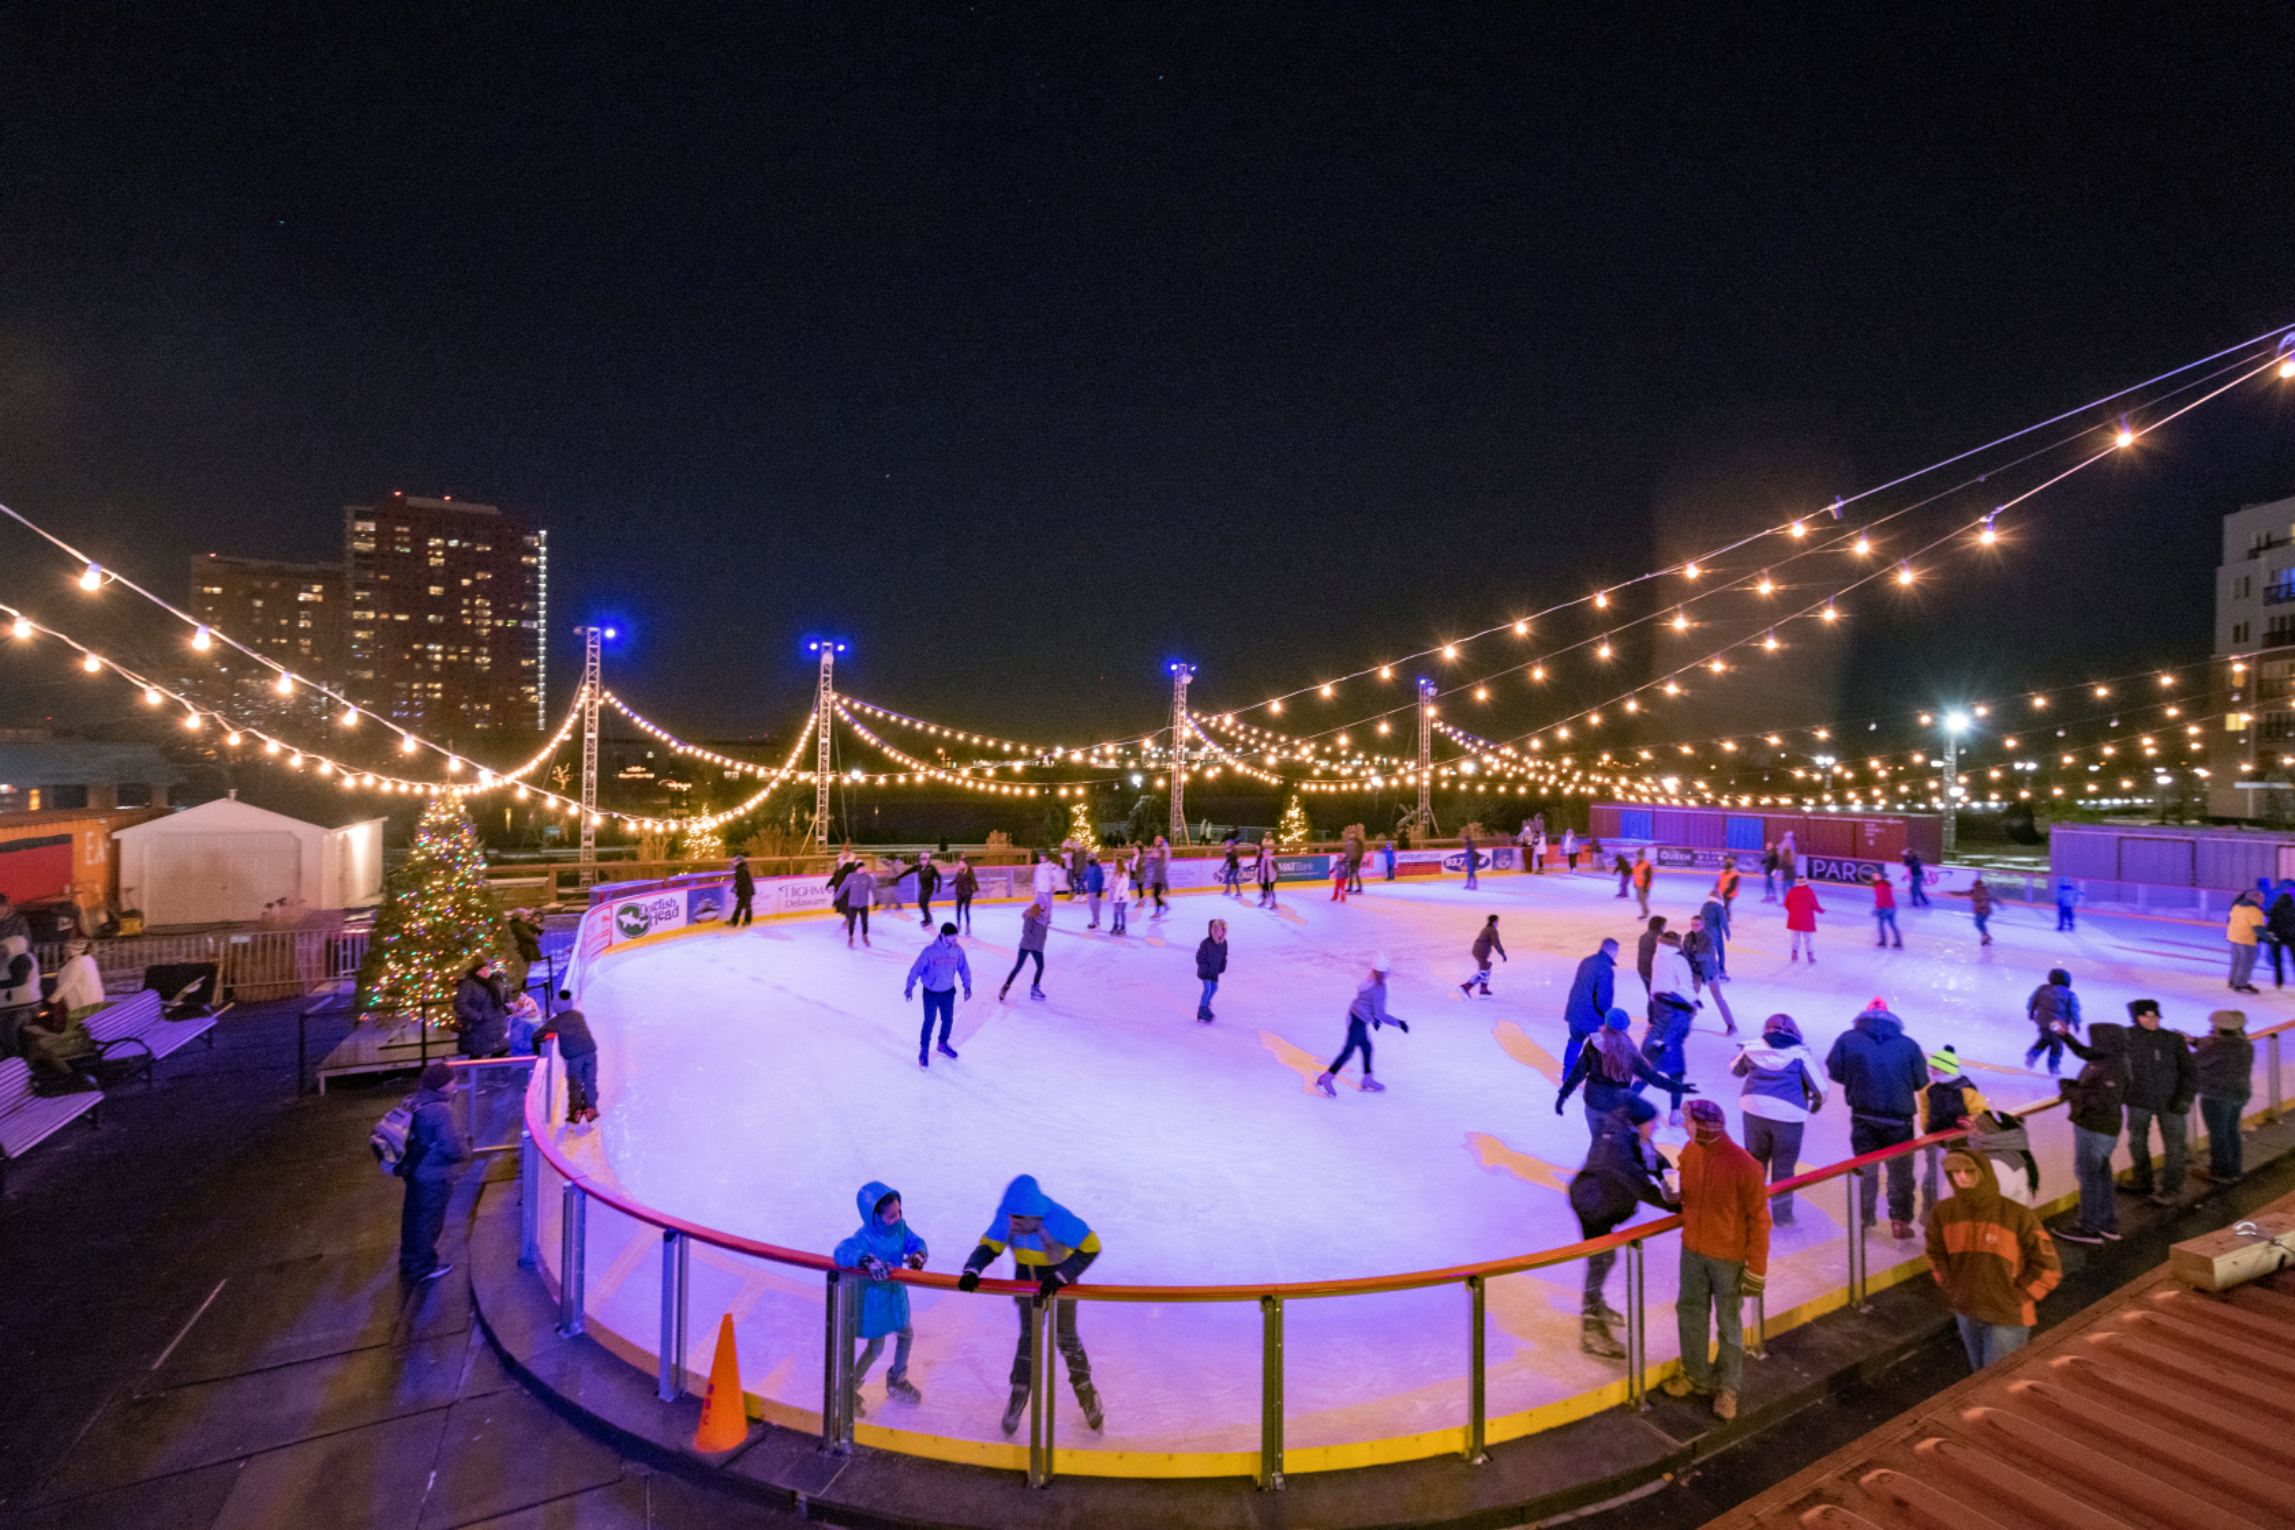 Horizon Service Riverfront Rink NOW OPEN through March 1st!